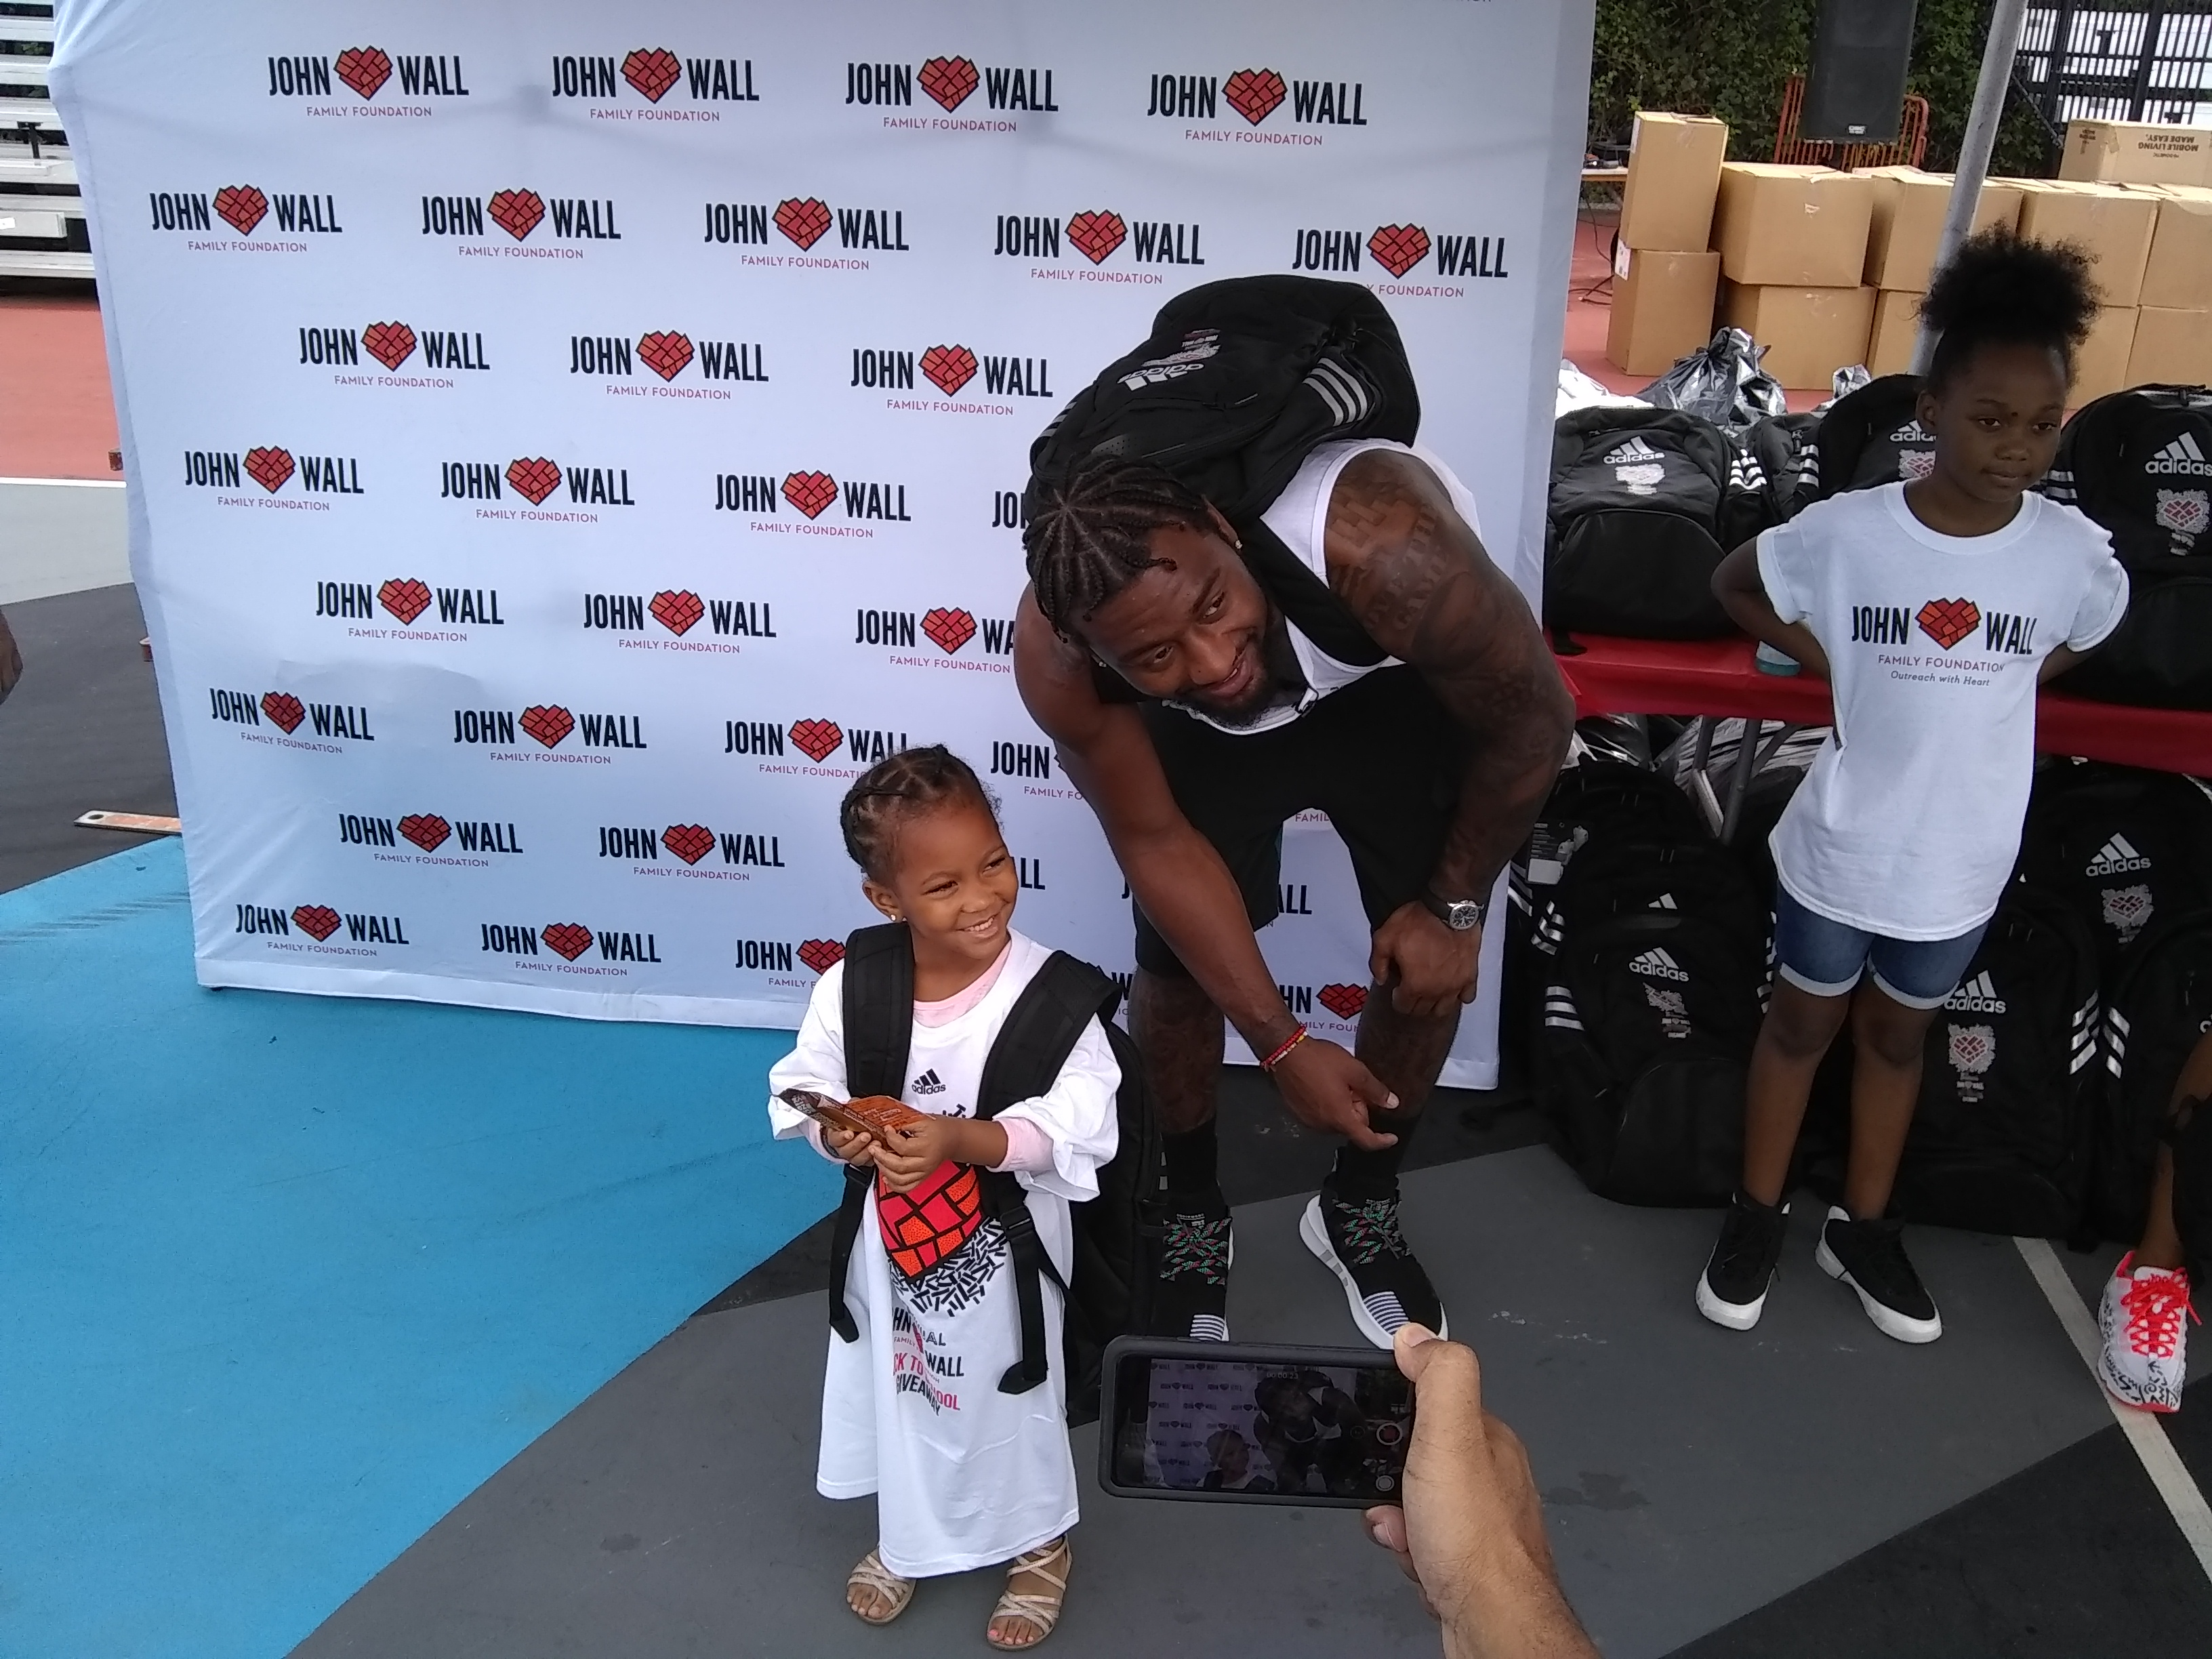 John Wall assists hundreds during his annual Backpack Giveaway